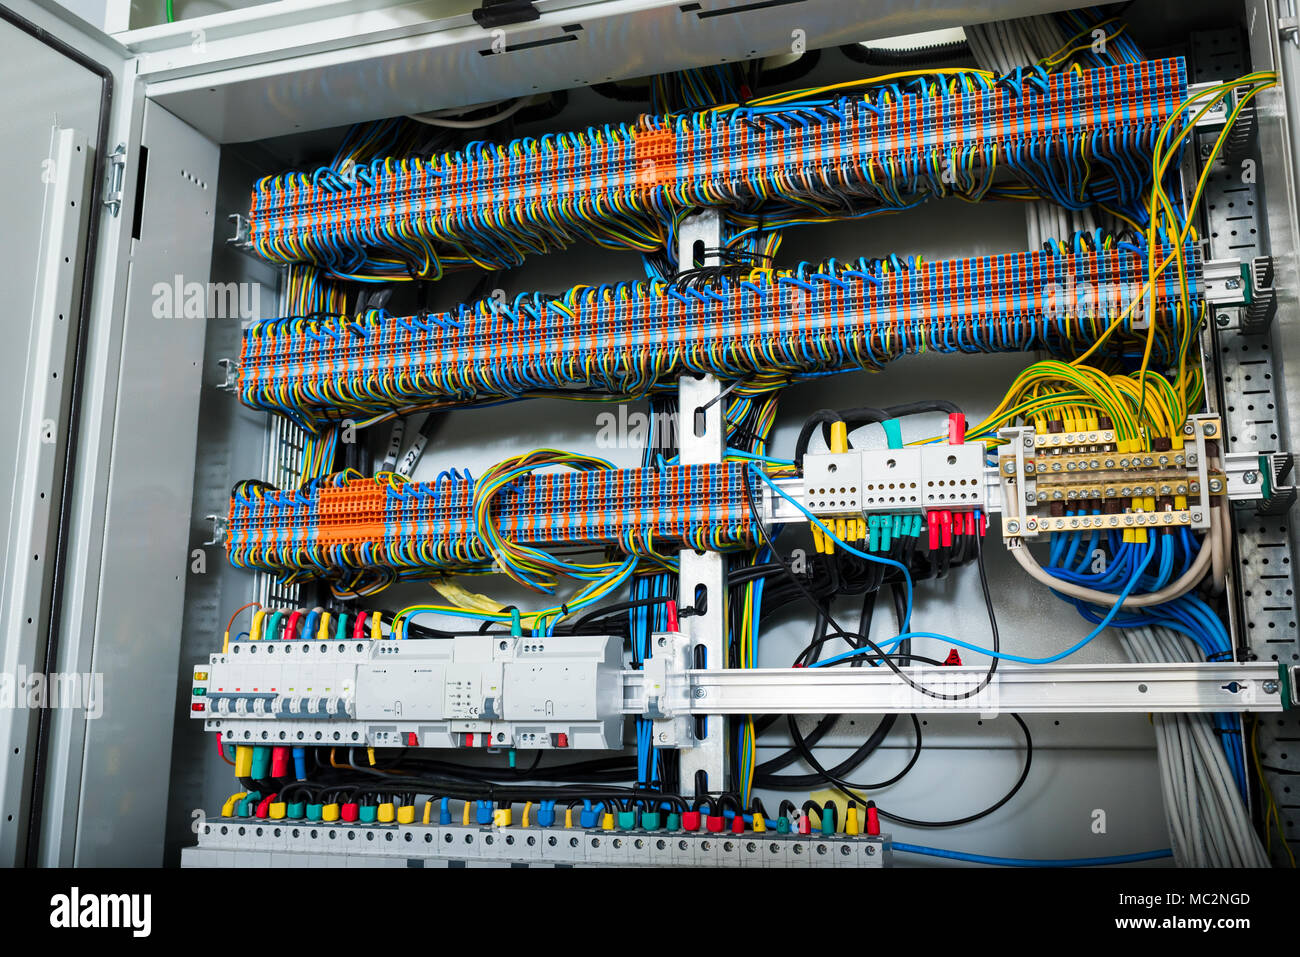 hight resolution of wires in electrical panel in the box